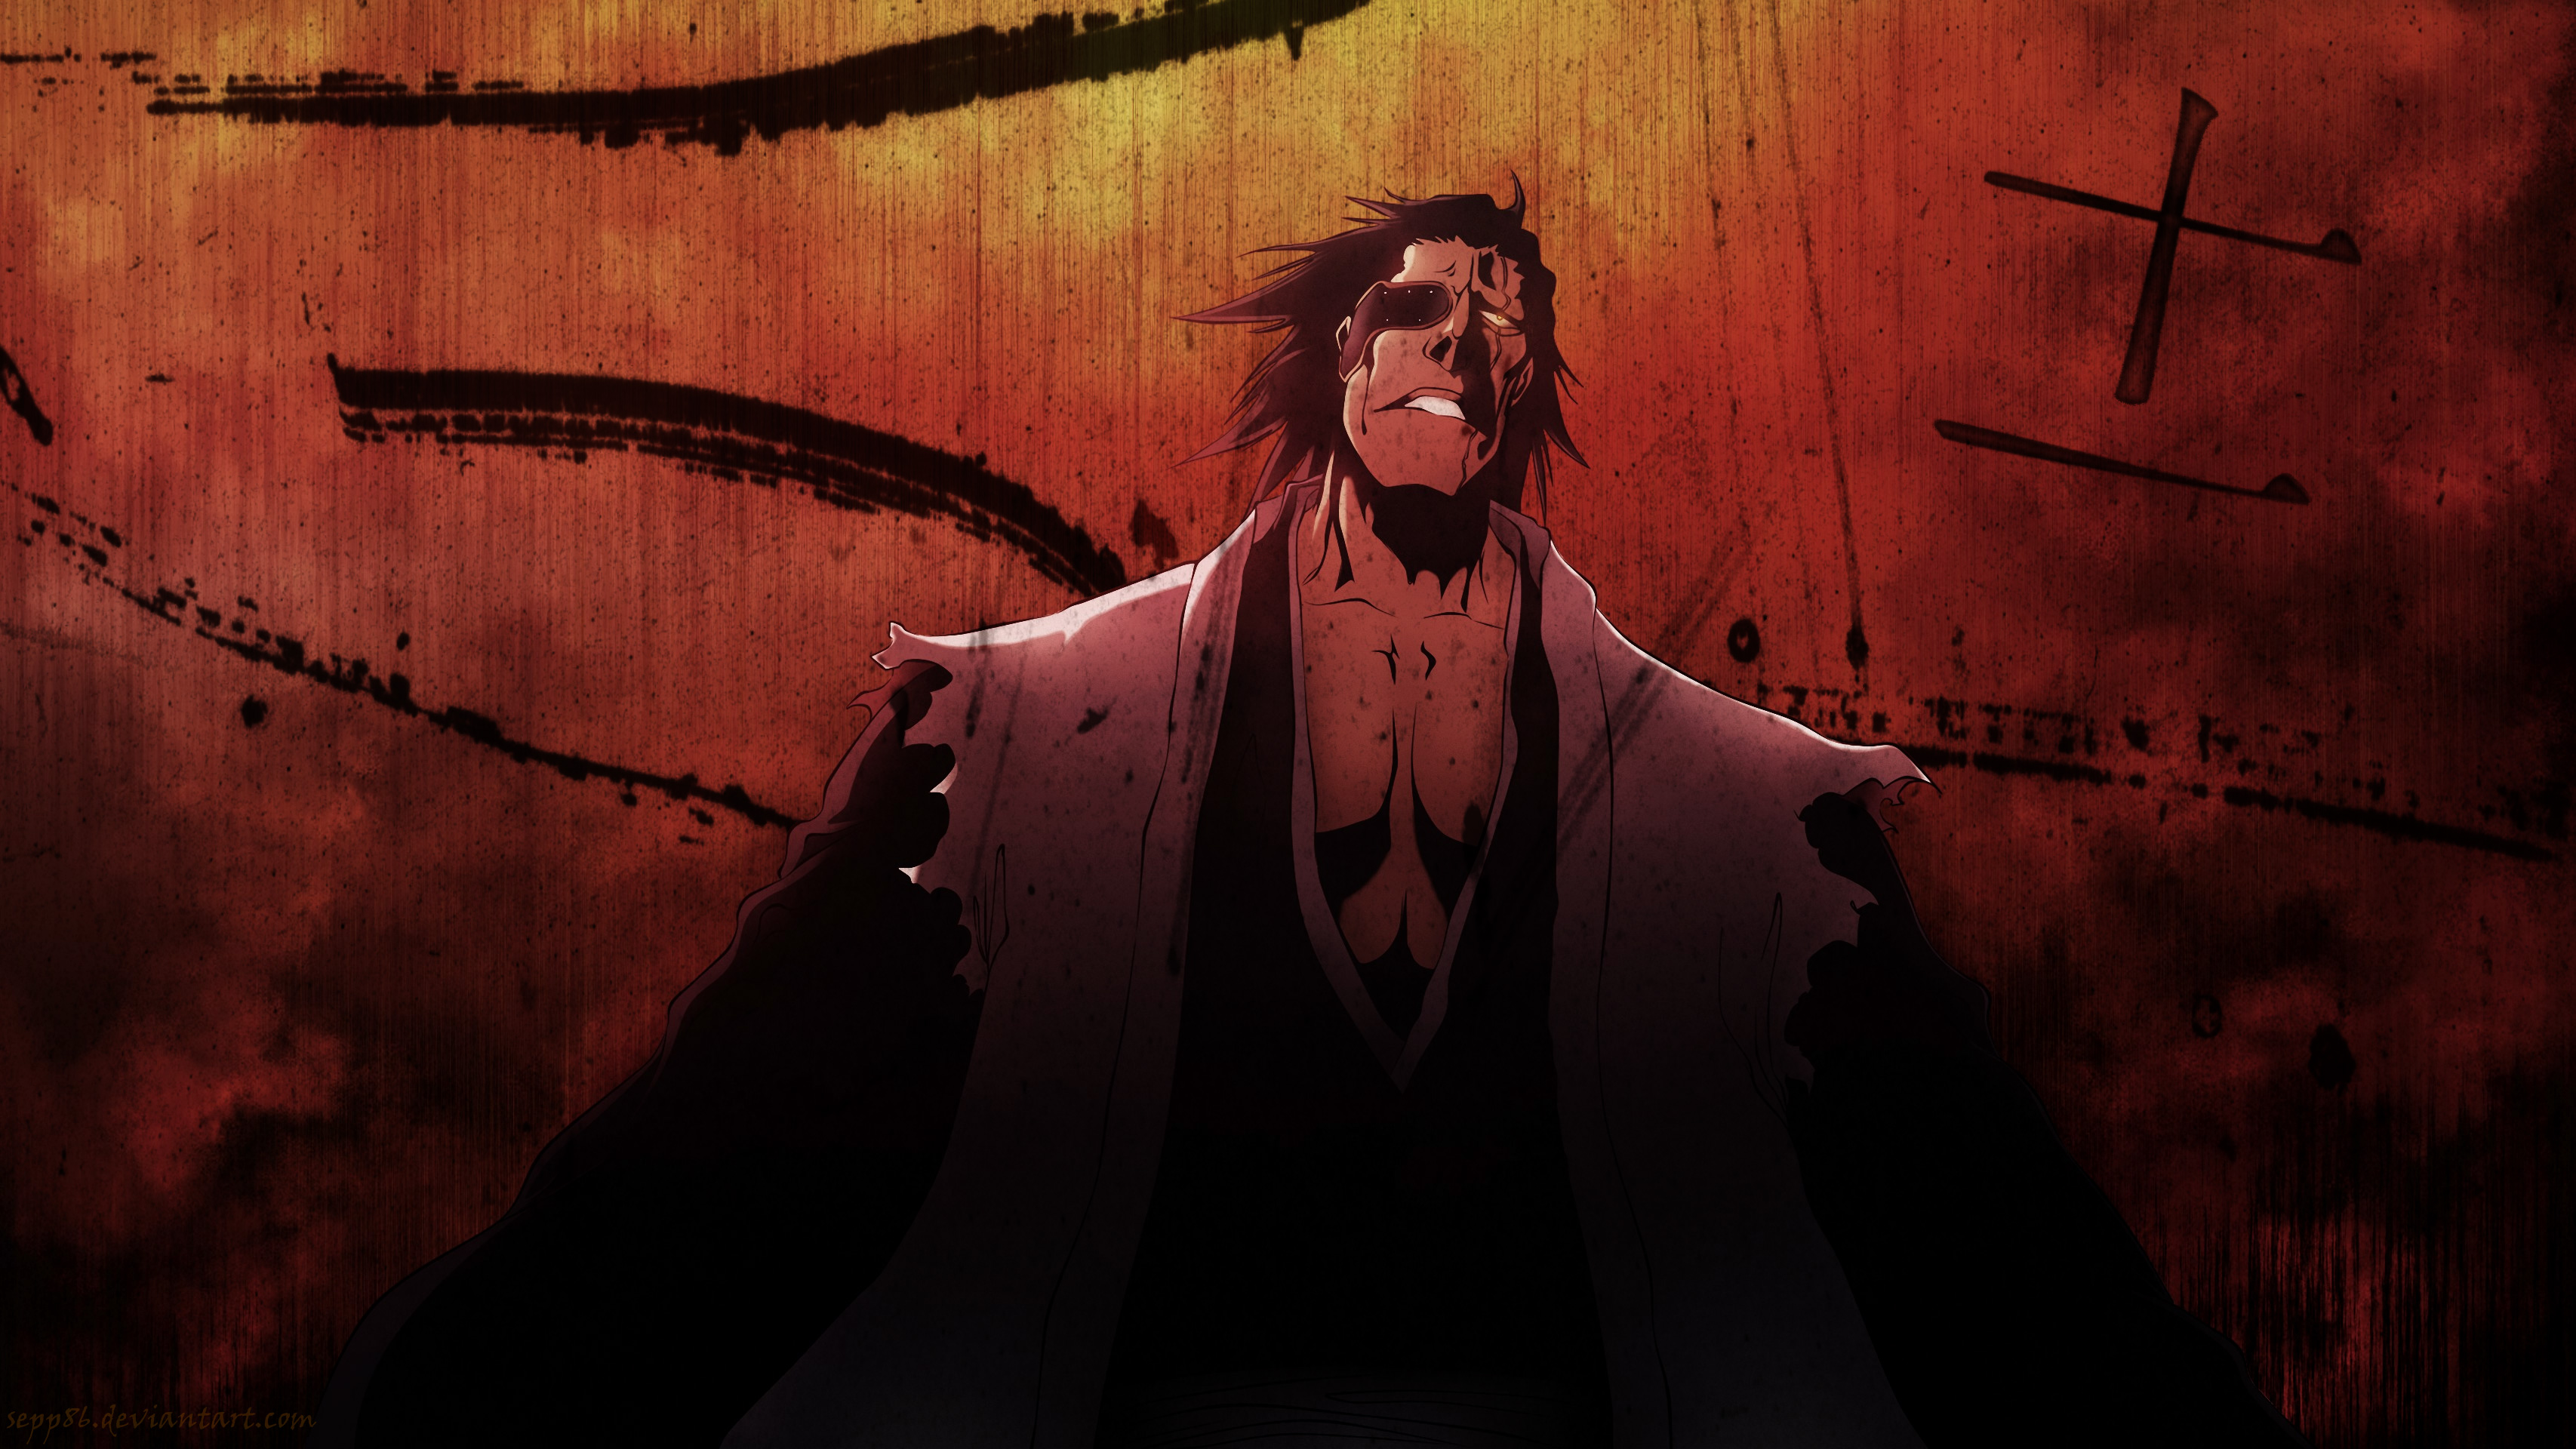 anime bleach kenpachi zaraki, hd anime, 4k wallpapers, images